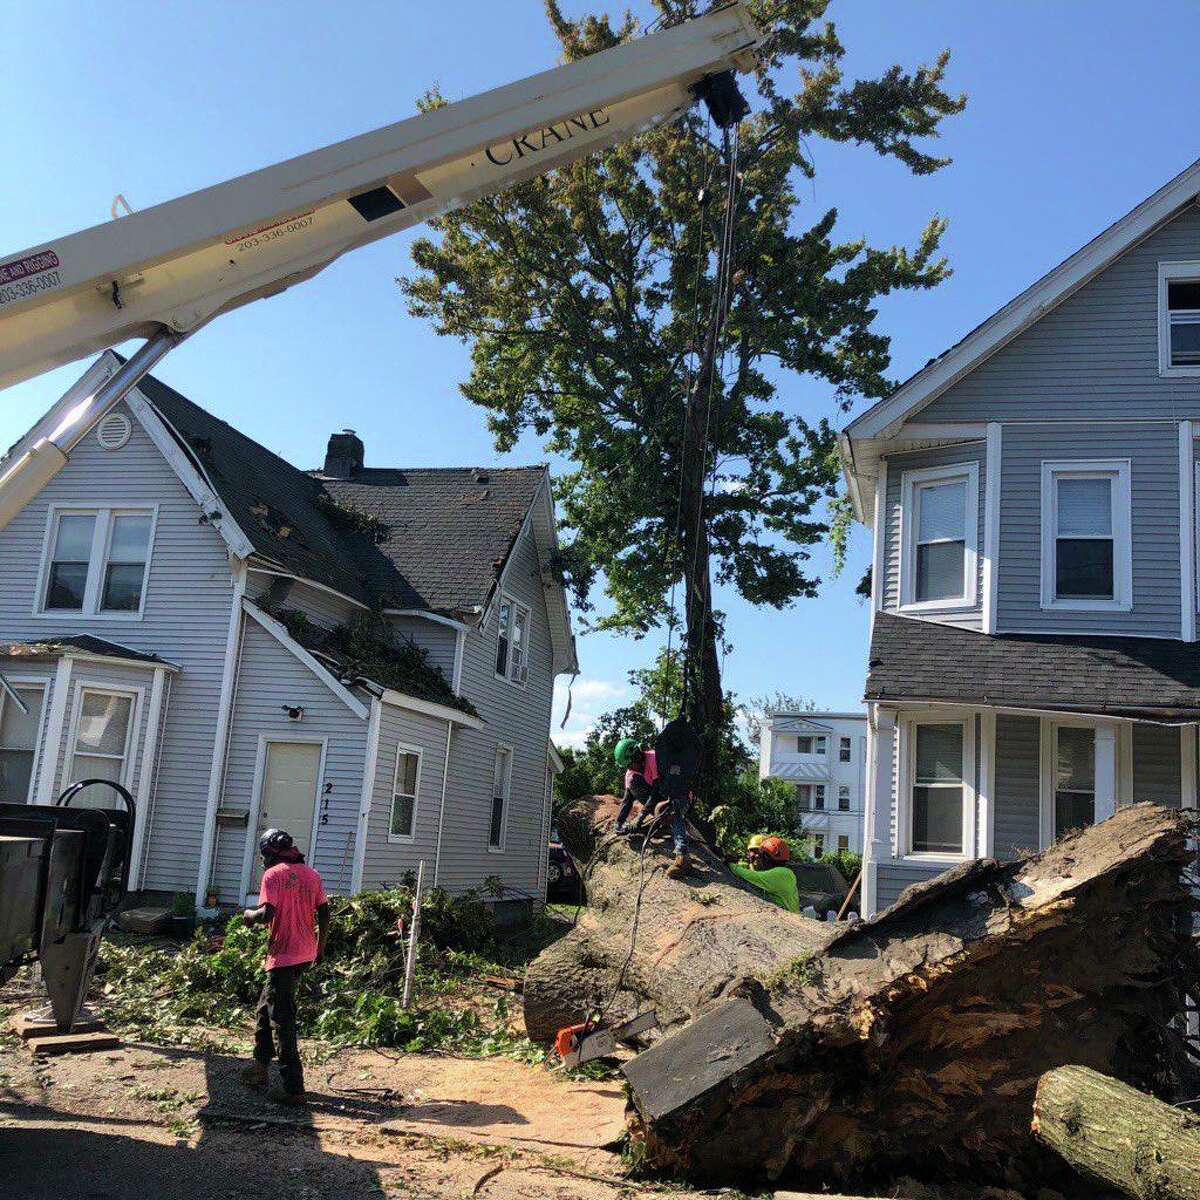 A tree down between homes on Beardsley Street in Bridgeport, Conn., on Saturday, Aug. 8, 2020.